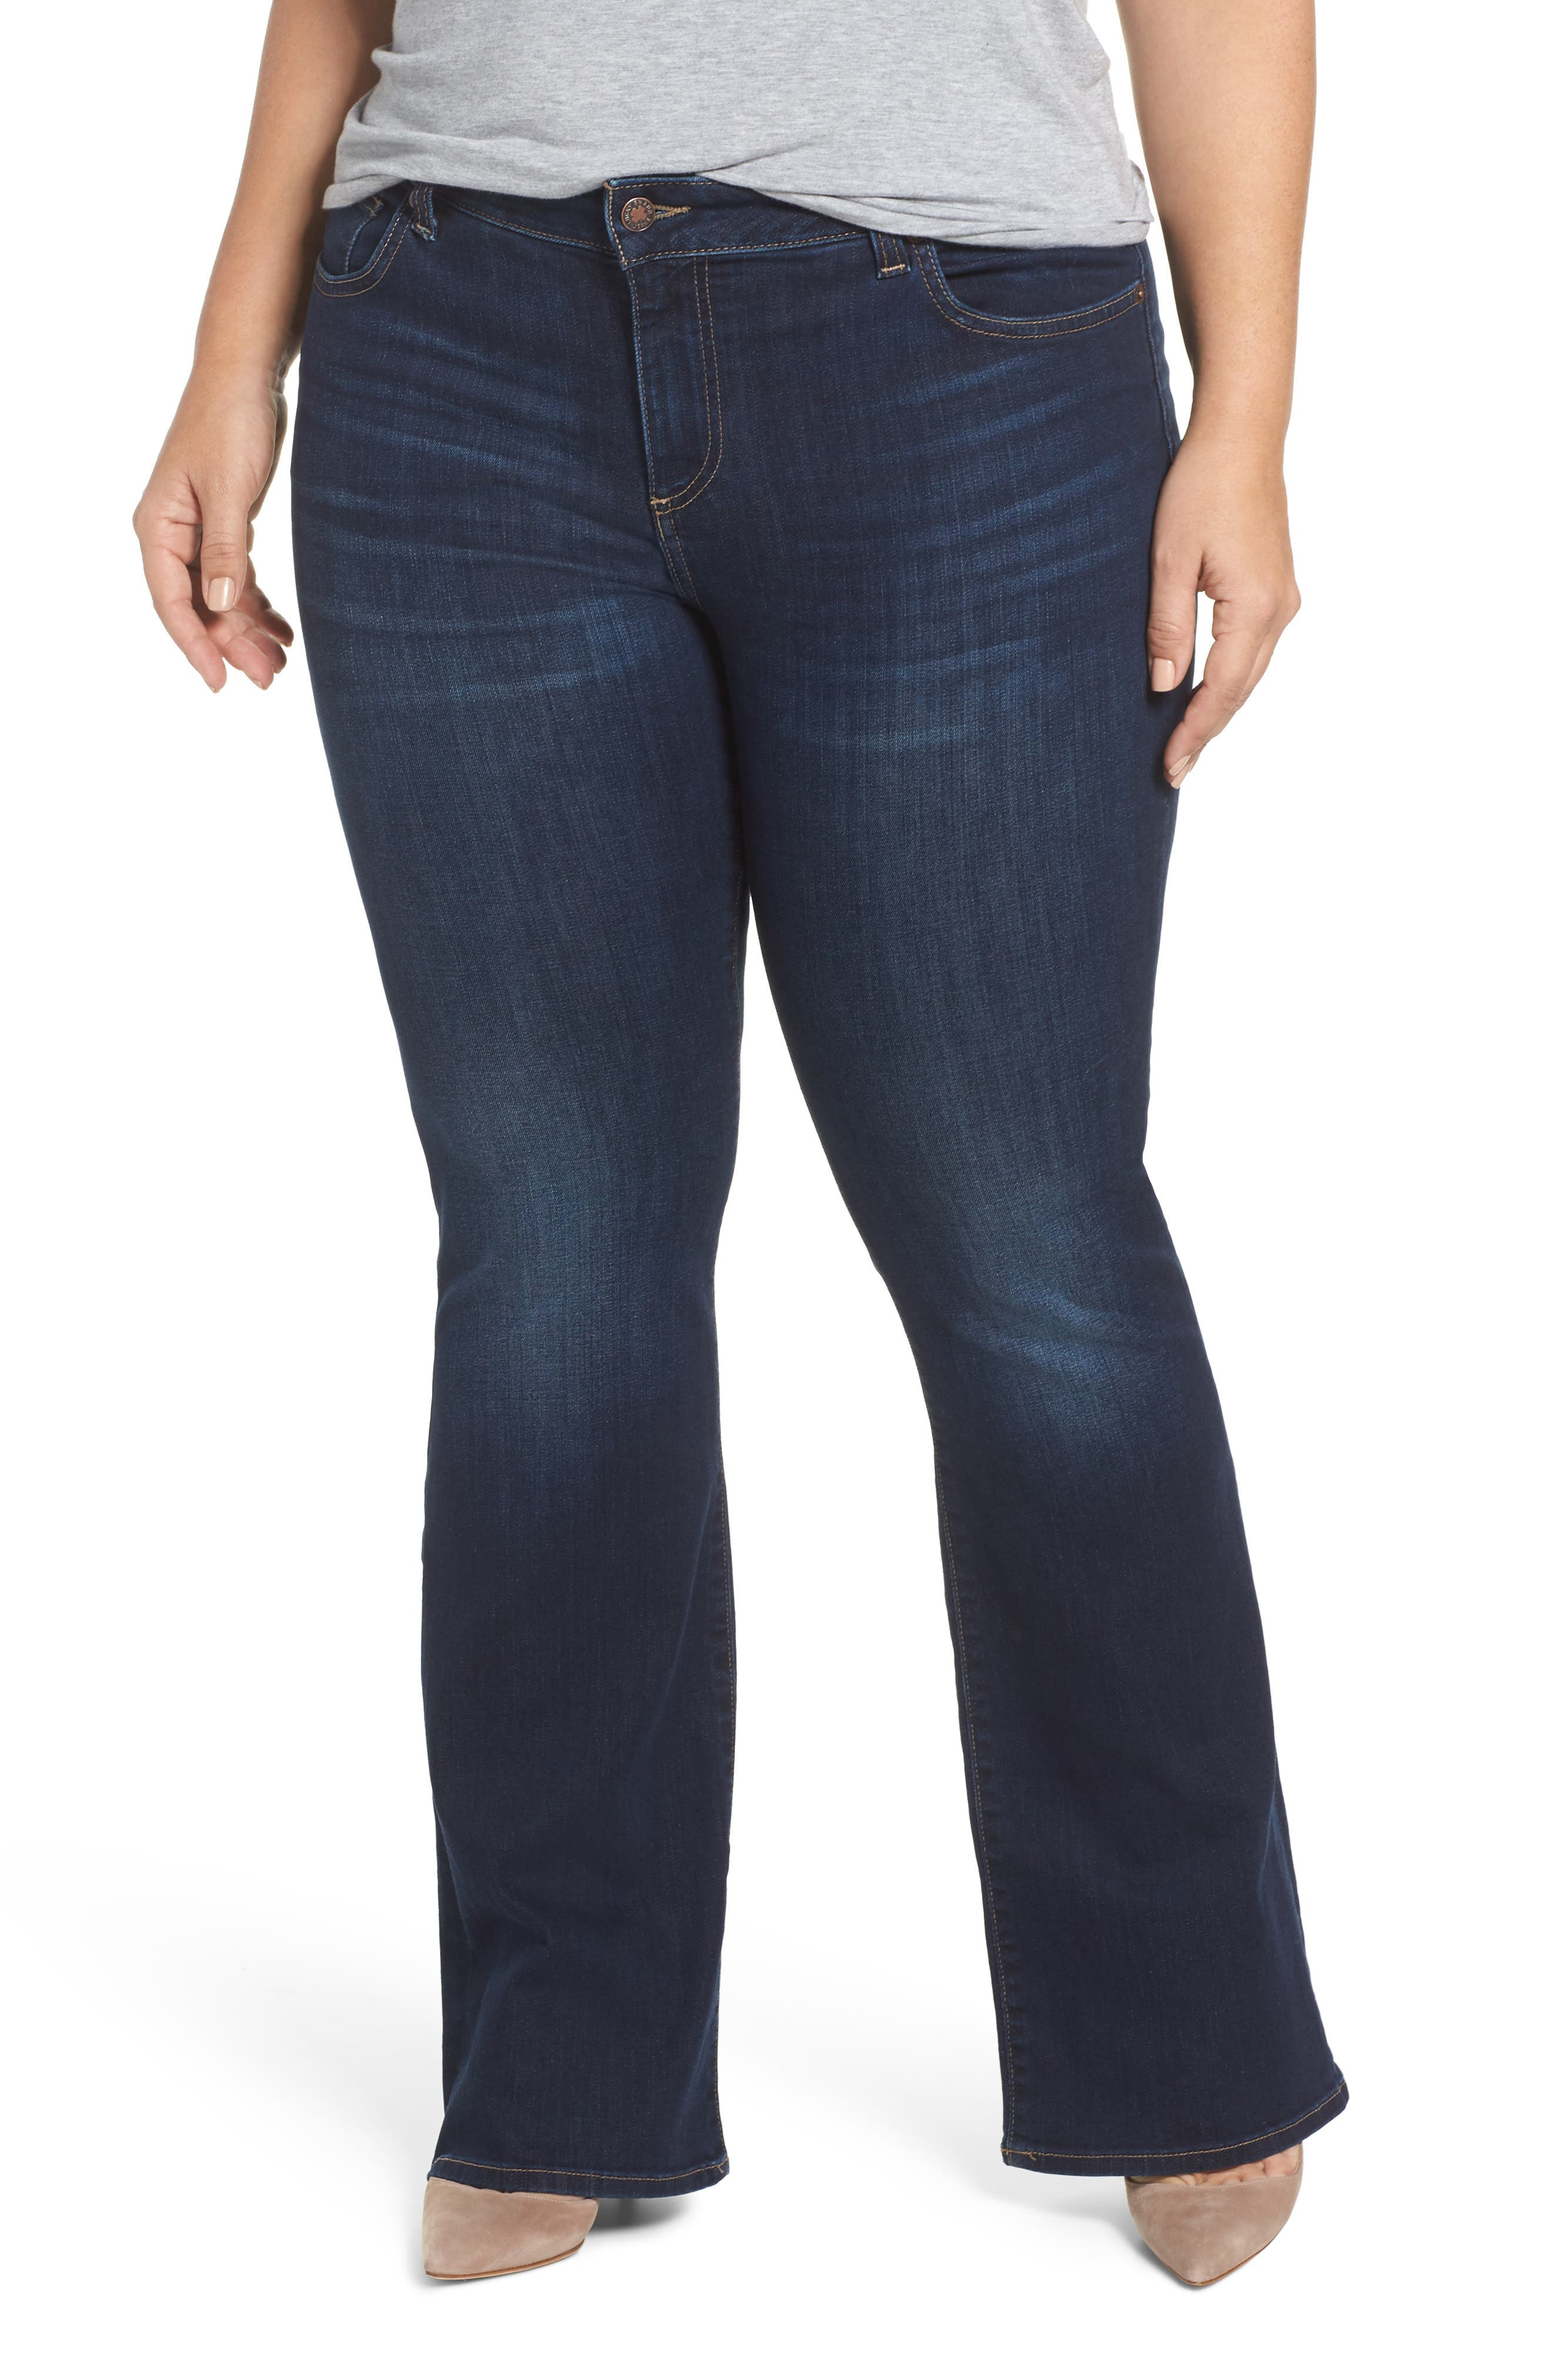 Ginger Bootcut Jeans,                         Main,                         color, Twilight Blue